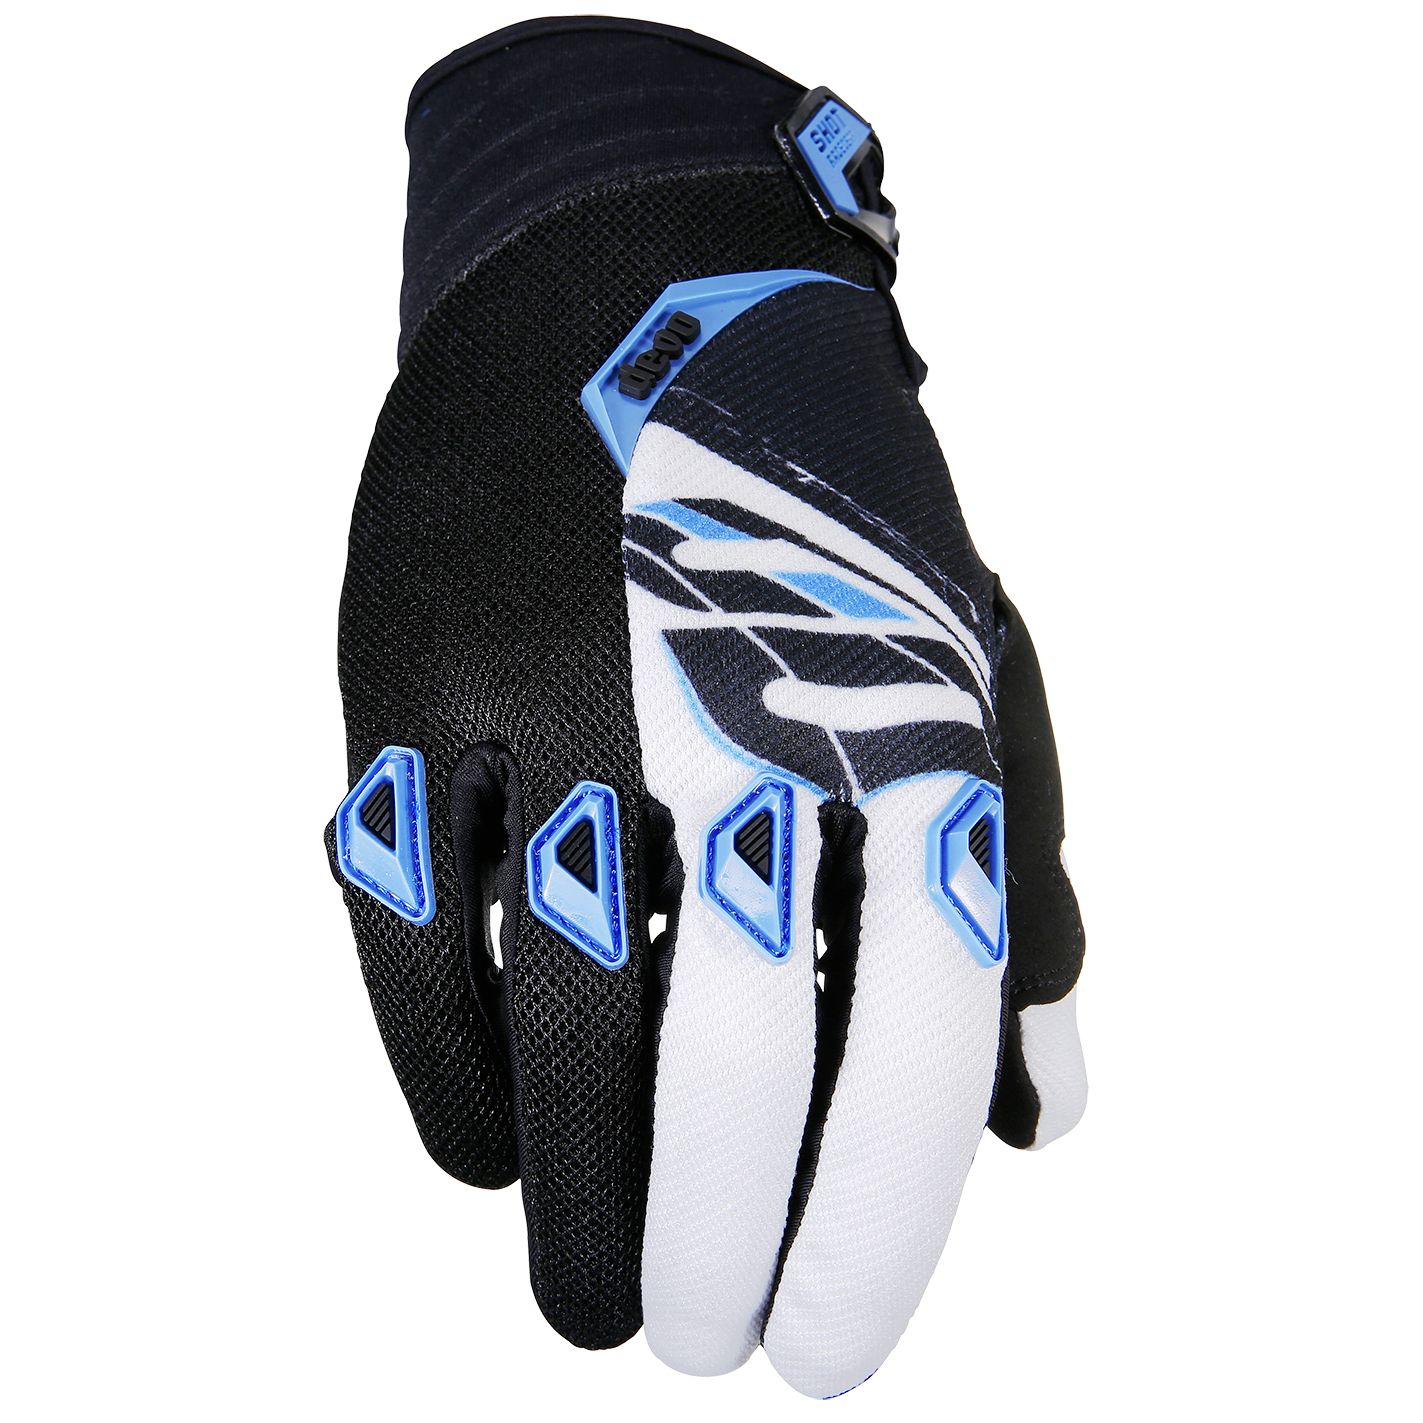 Gants cross Shot destockage DEVO FAST BLEU ENFANT